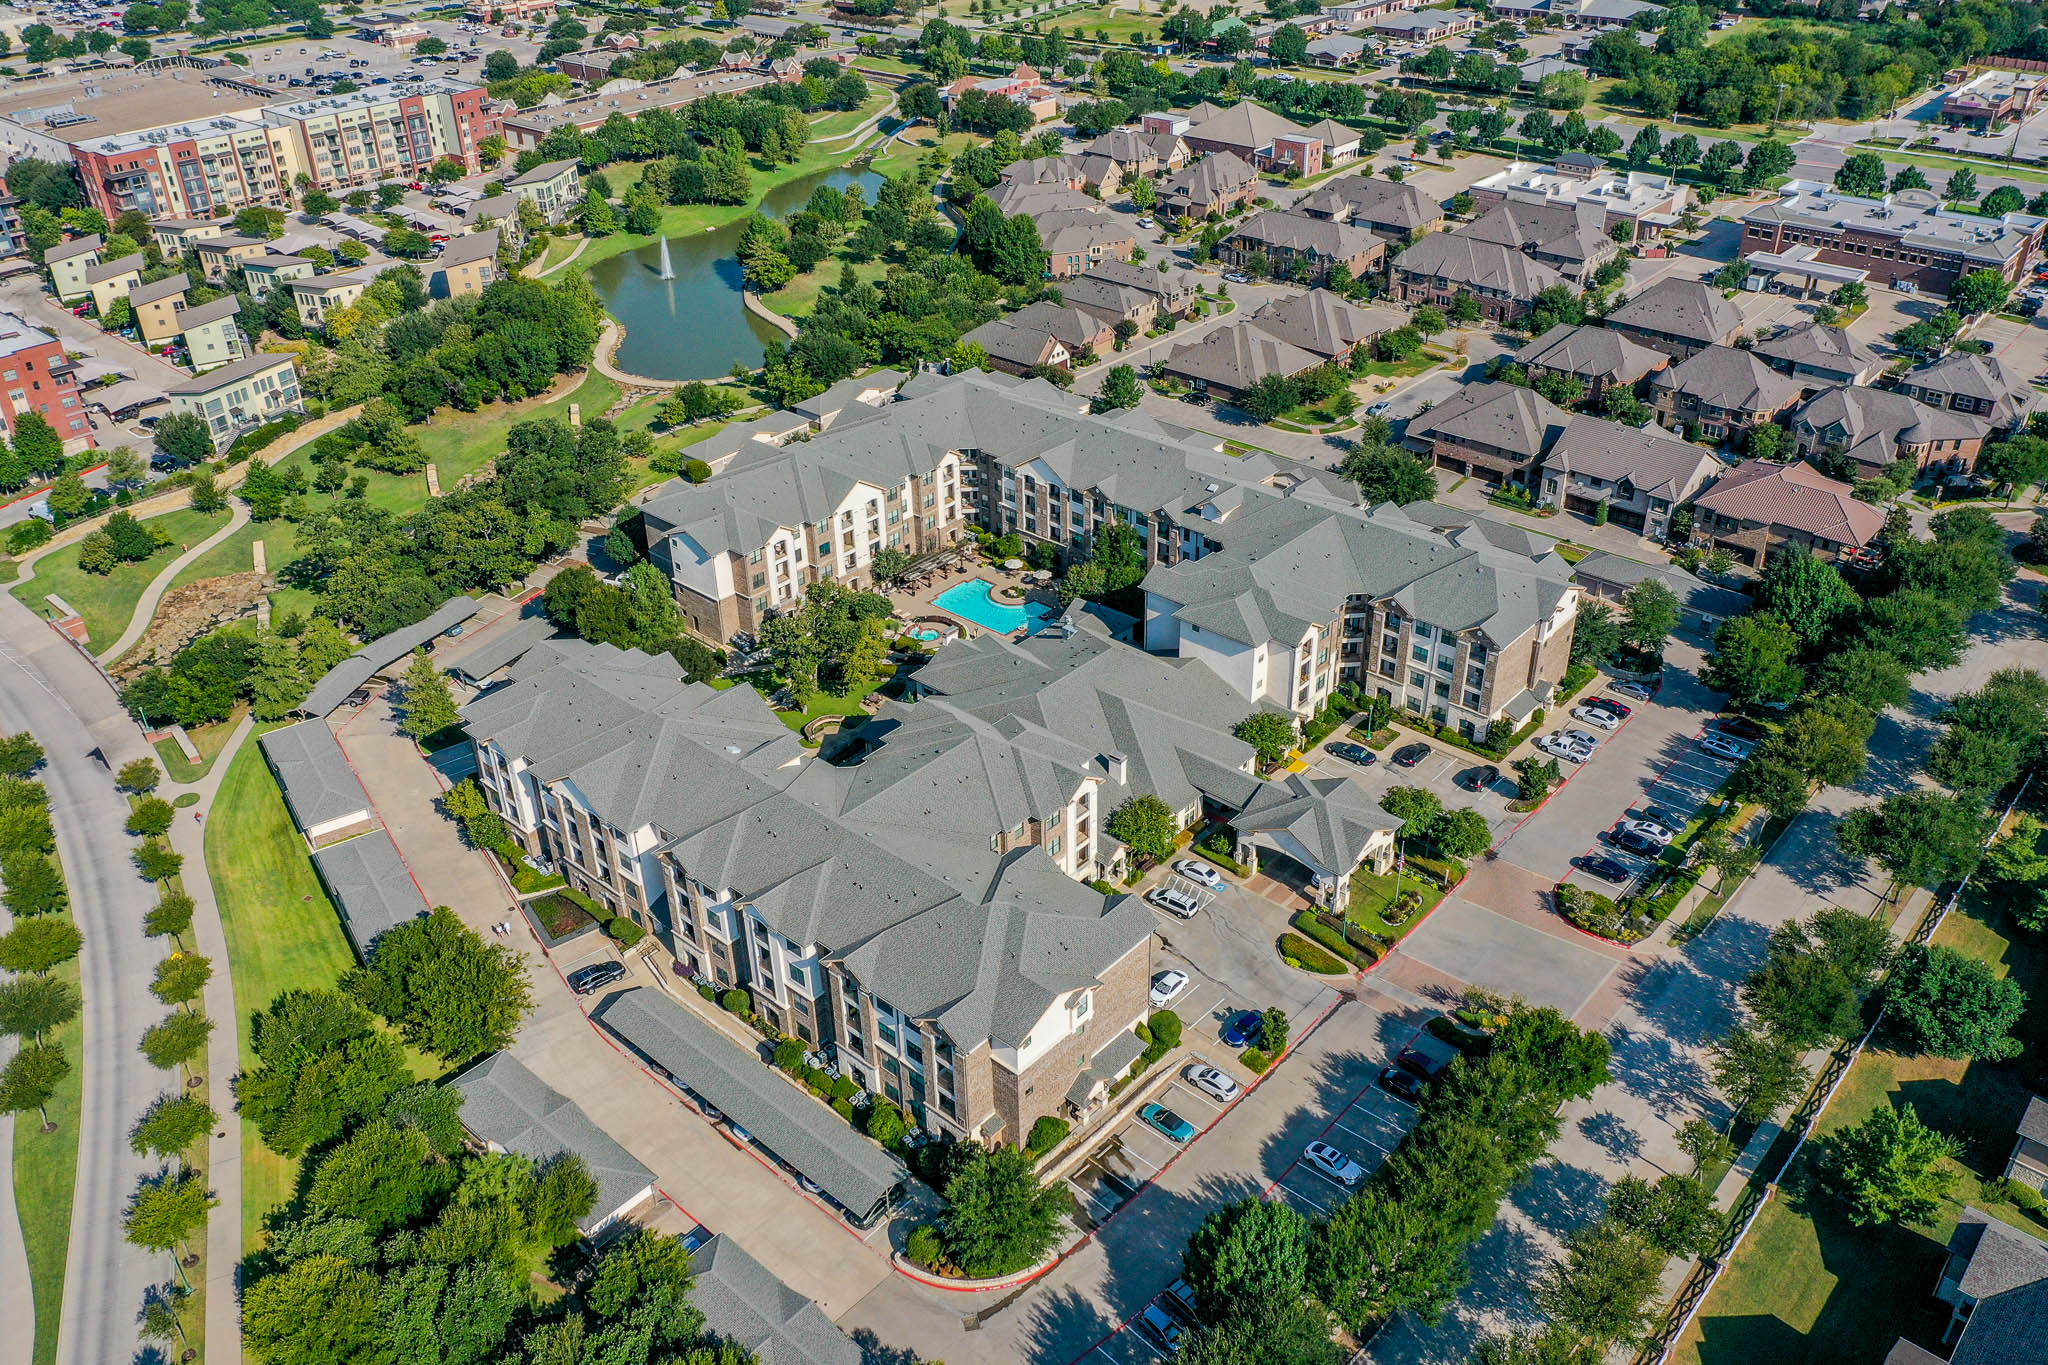 Exterior view of the entrance to our wonderful senior living community in Keller.